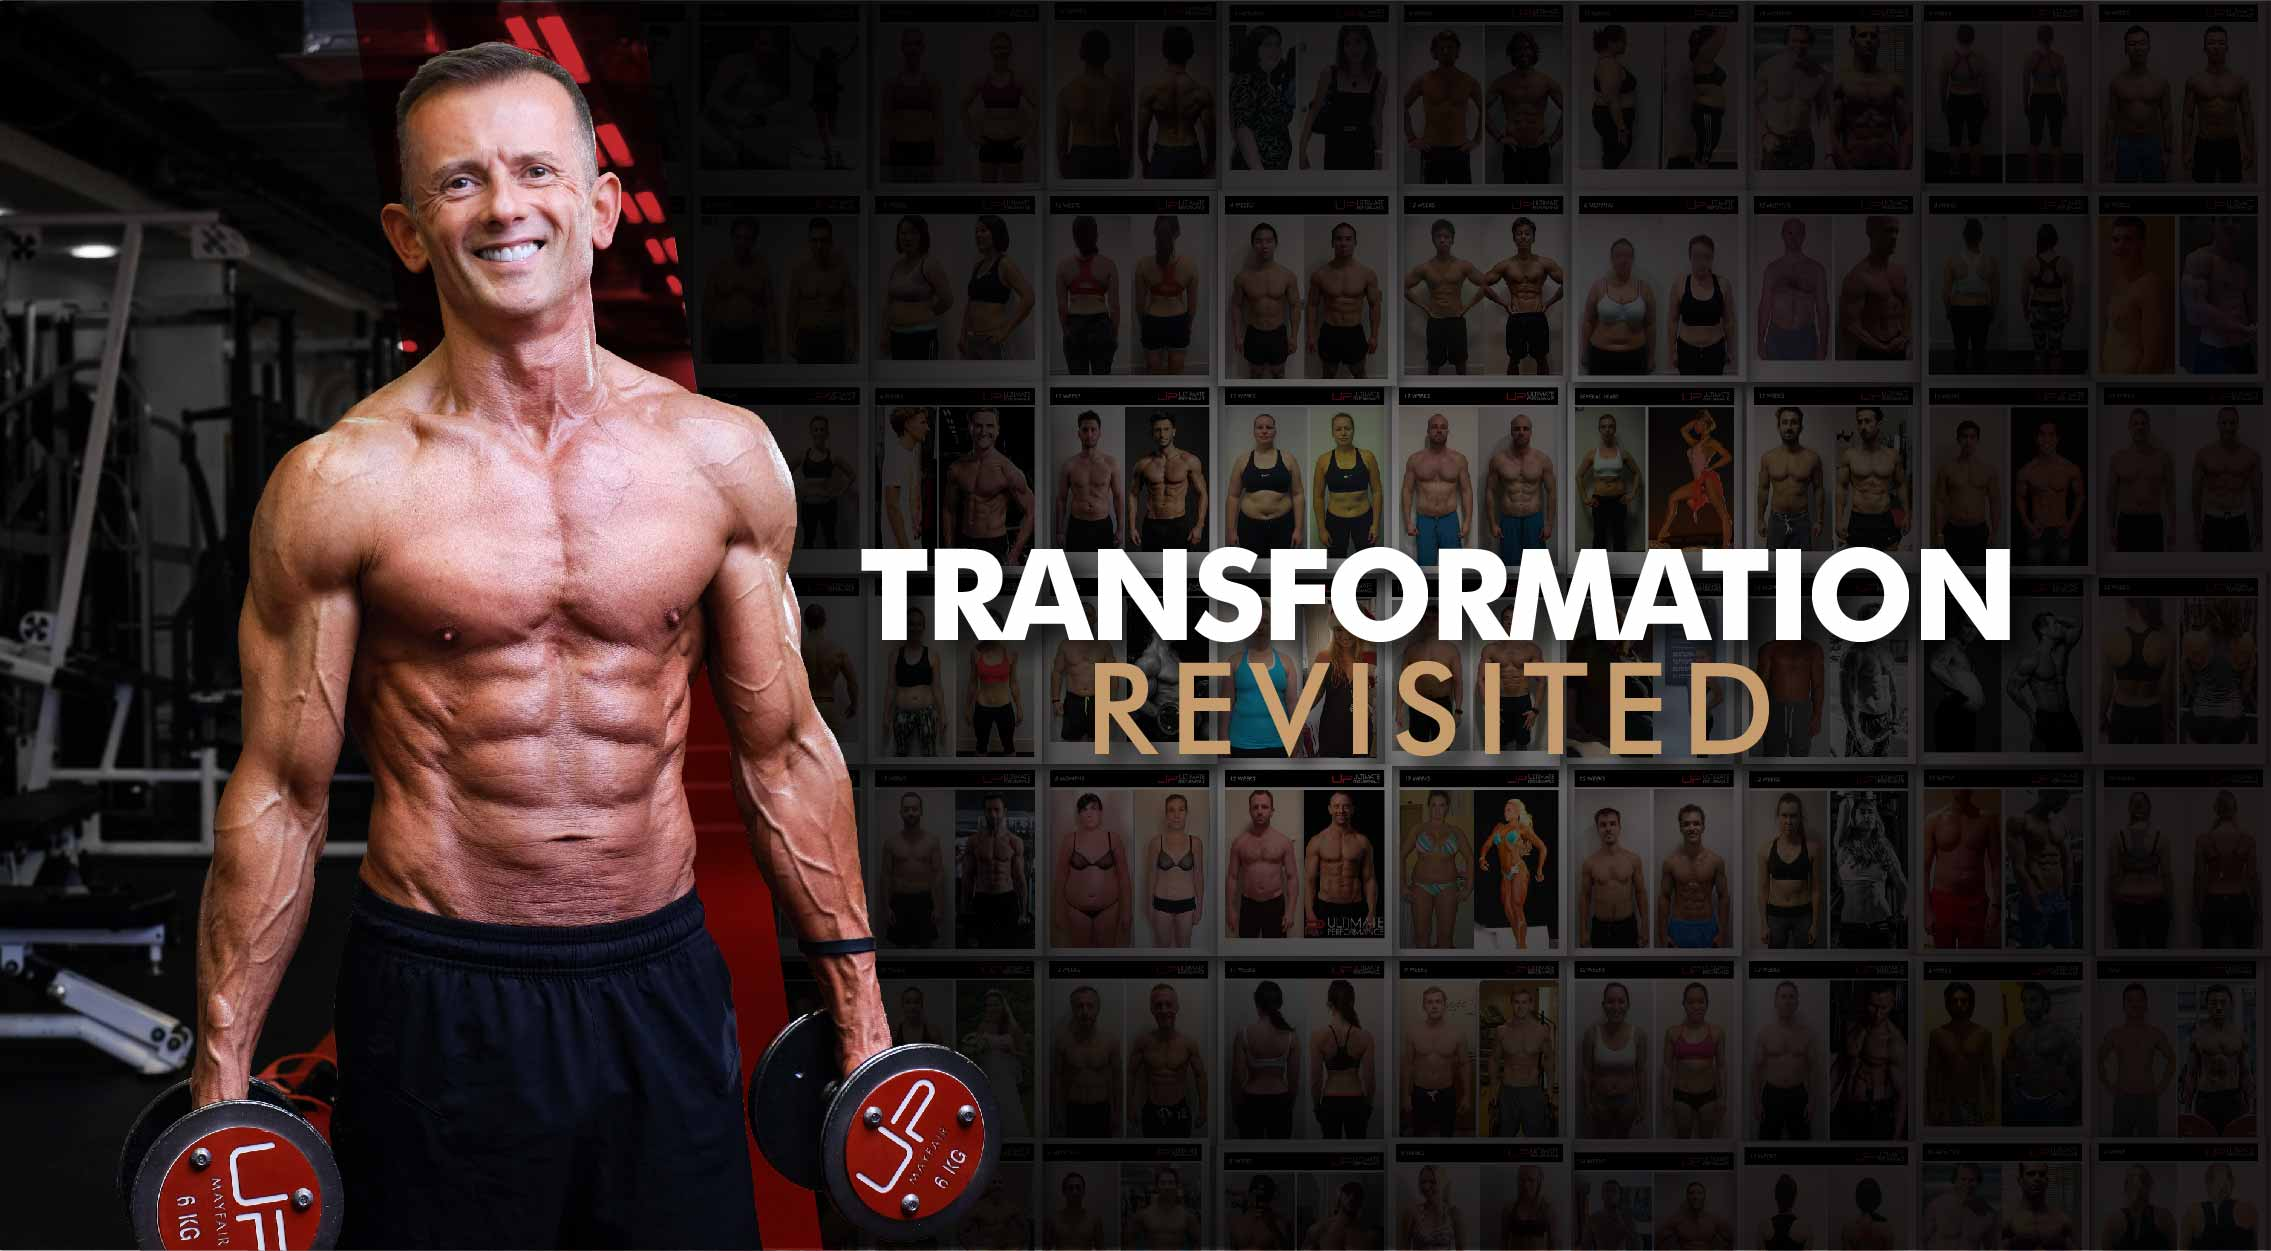 Stewart transformation Ultimate Performance Mayfair